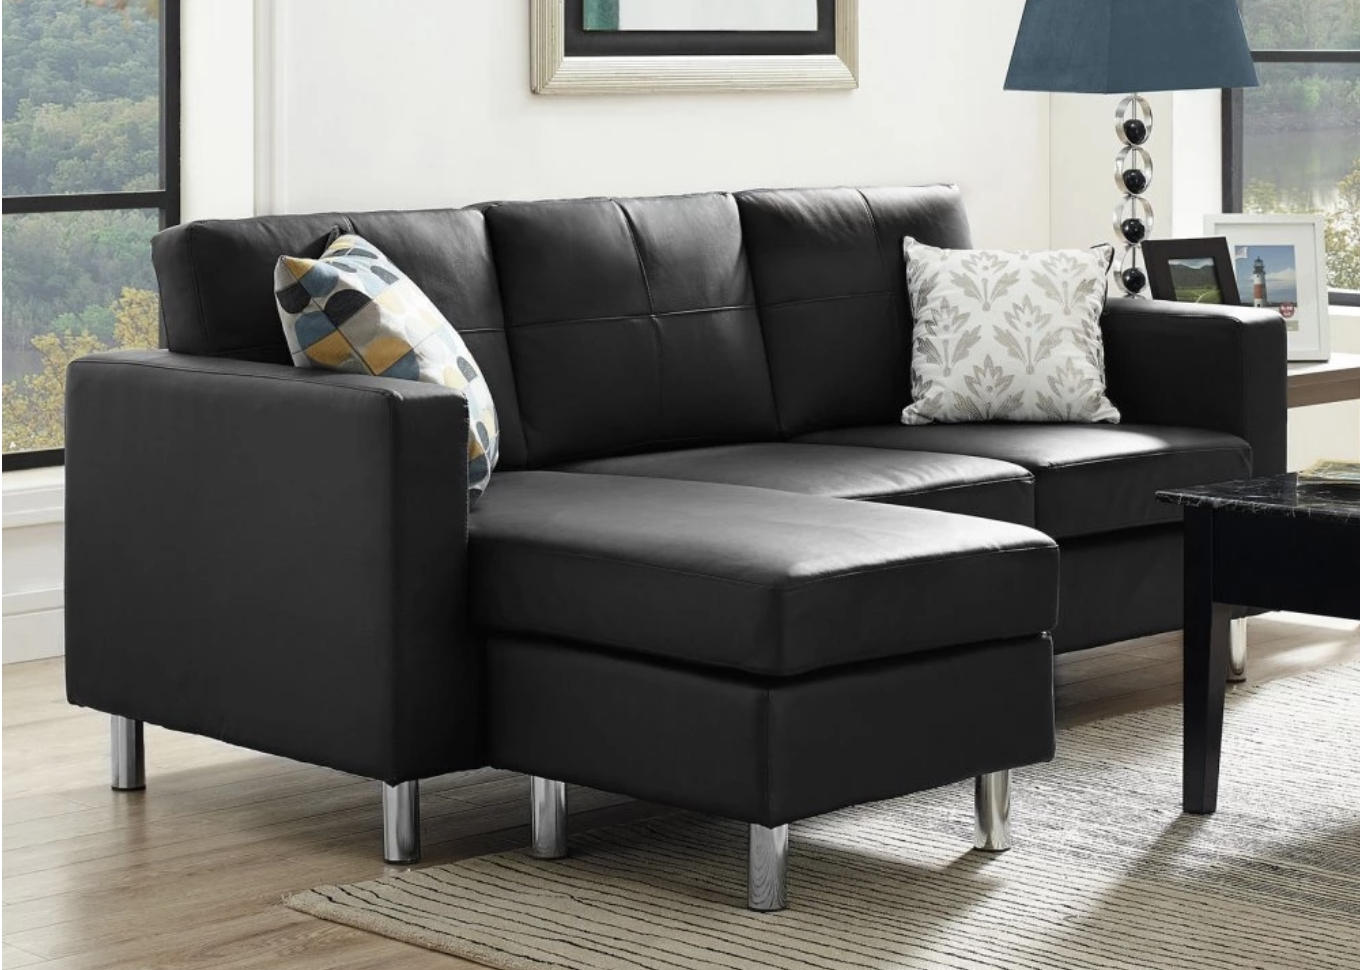 75 Modern Sectional Sofas For Small Spaces (2018) in Sectional Sofas for Small Places